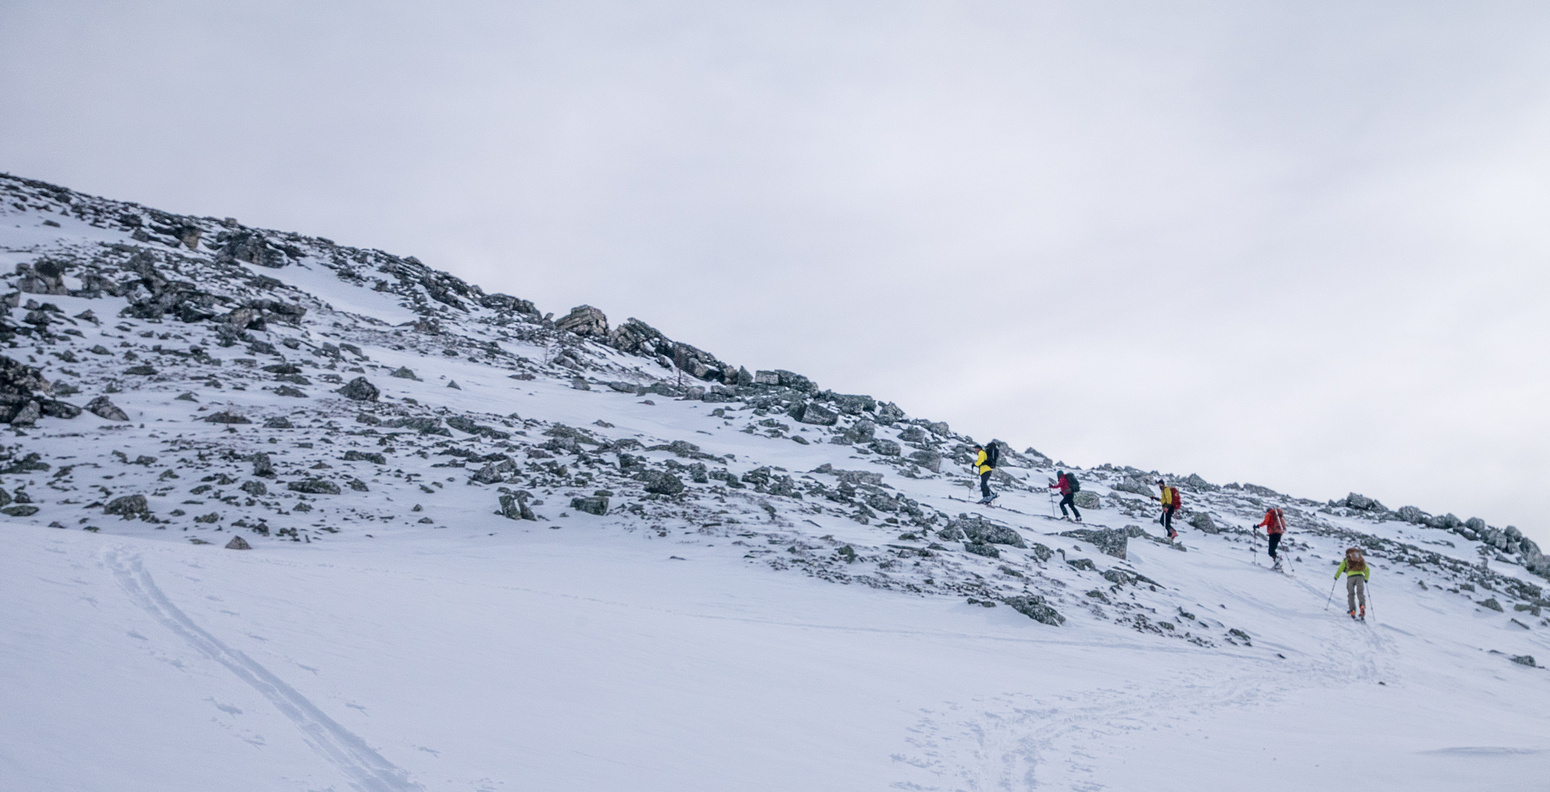 Working our way up the snow gully.